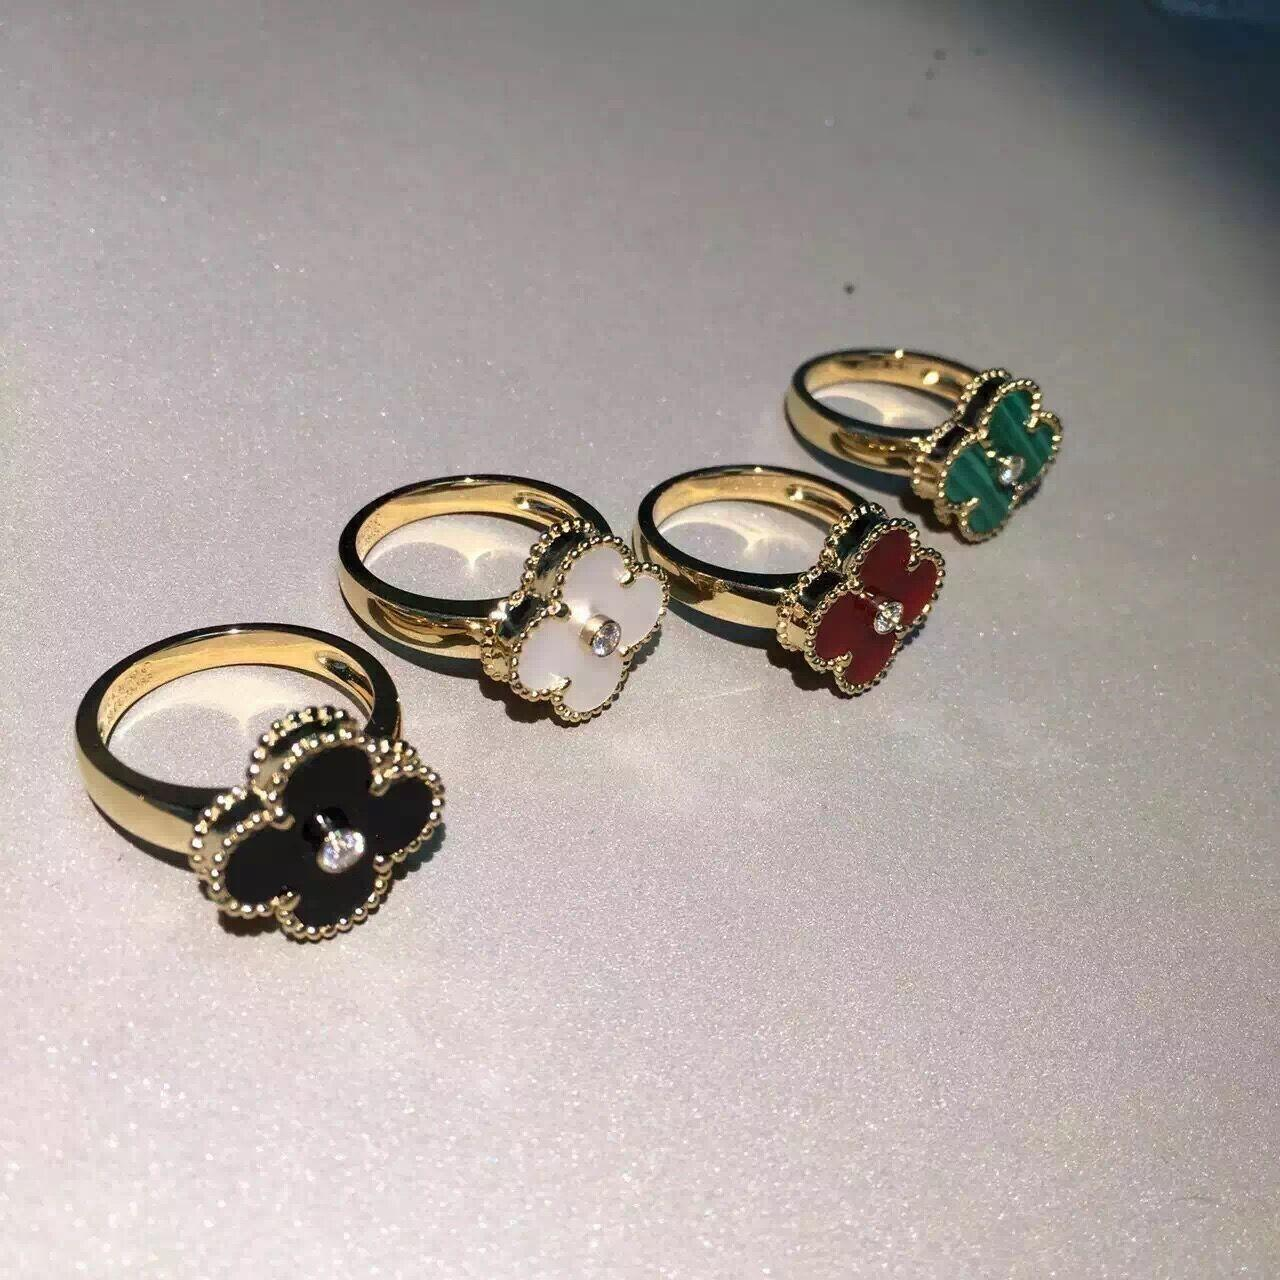 Quality VCA Vintage Alhambra ring yellow gold onyx round diamond diamond quality SI H for sale